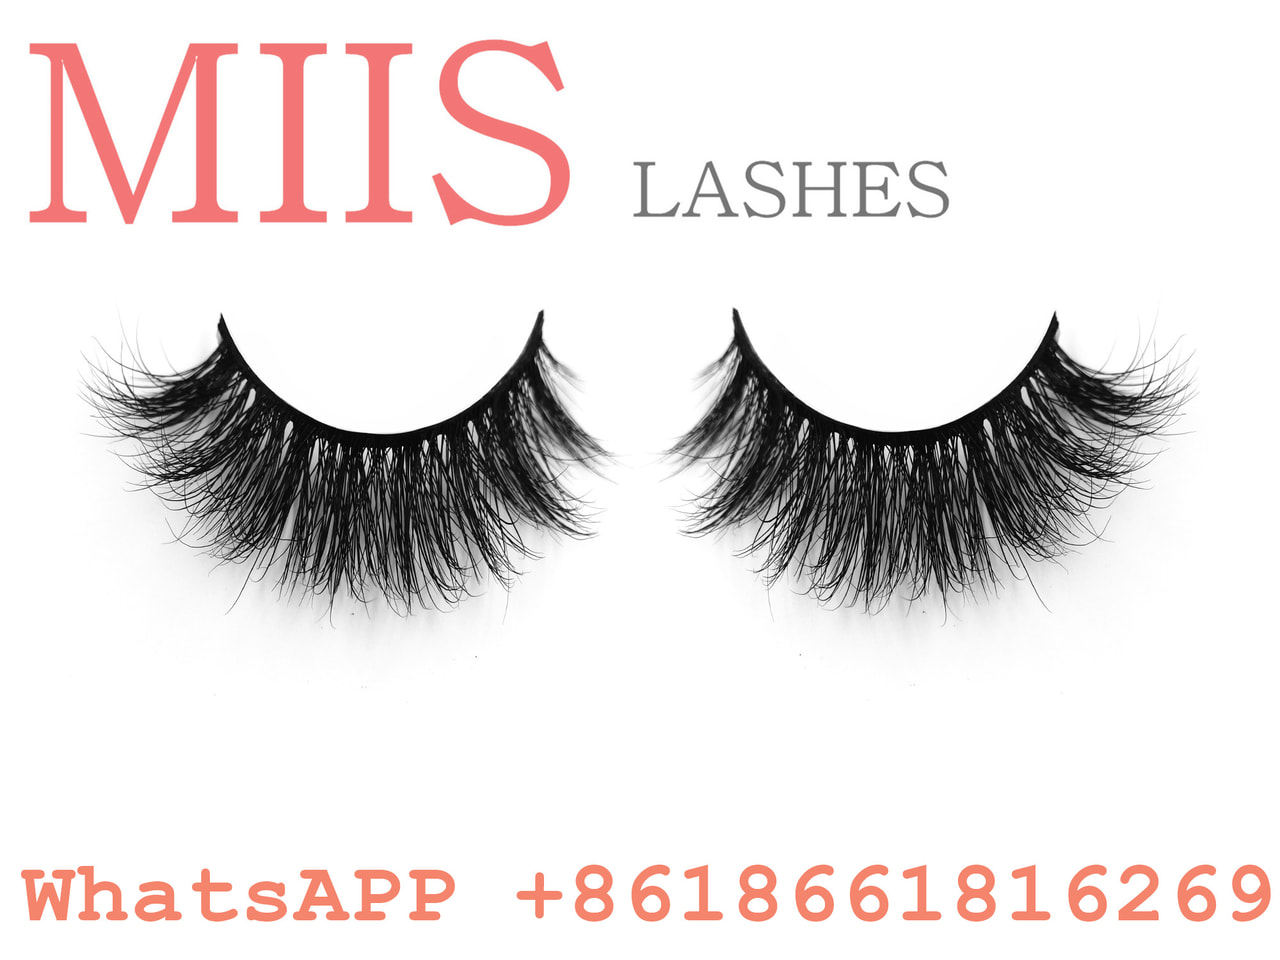 article and lashes image